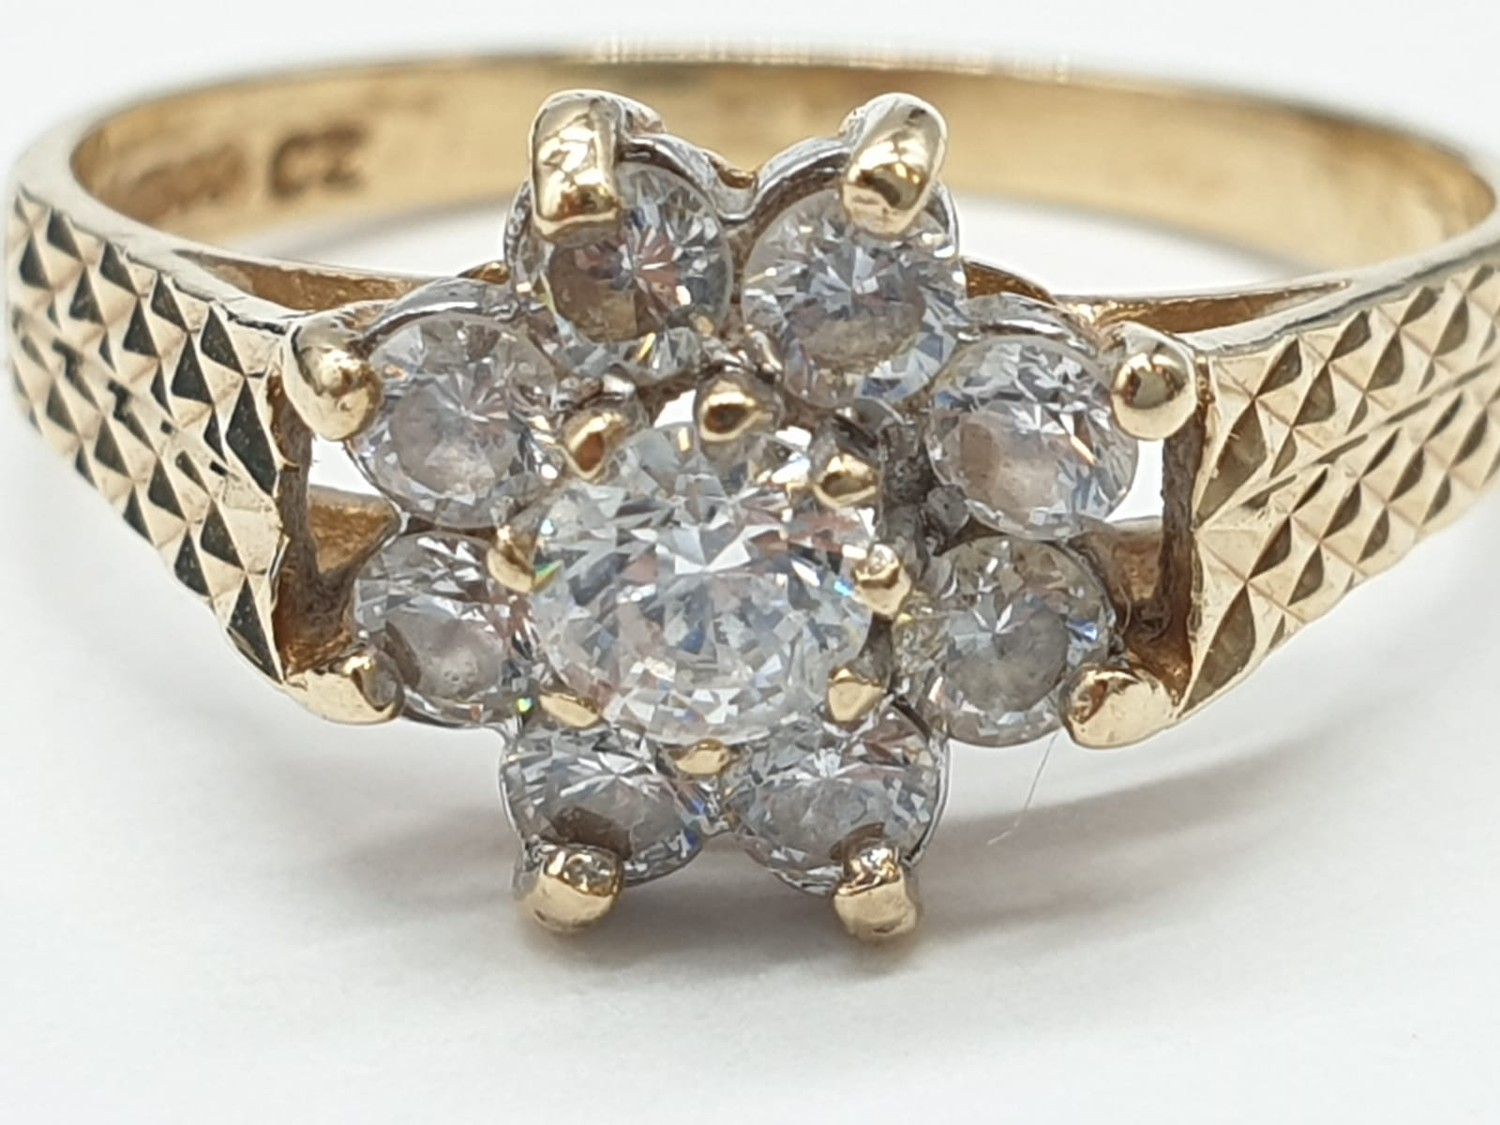 9ct Gold ring having cubic zirconia cluster to top in claw mounts and chased design work to - Image 5 of 7